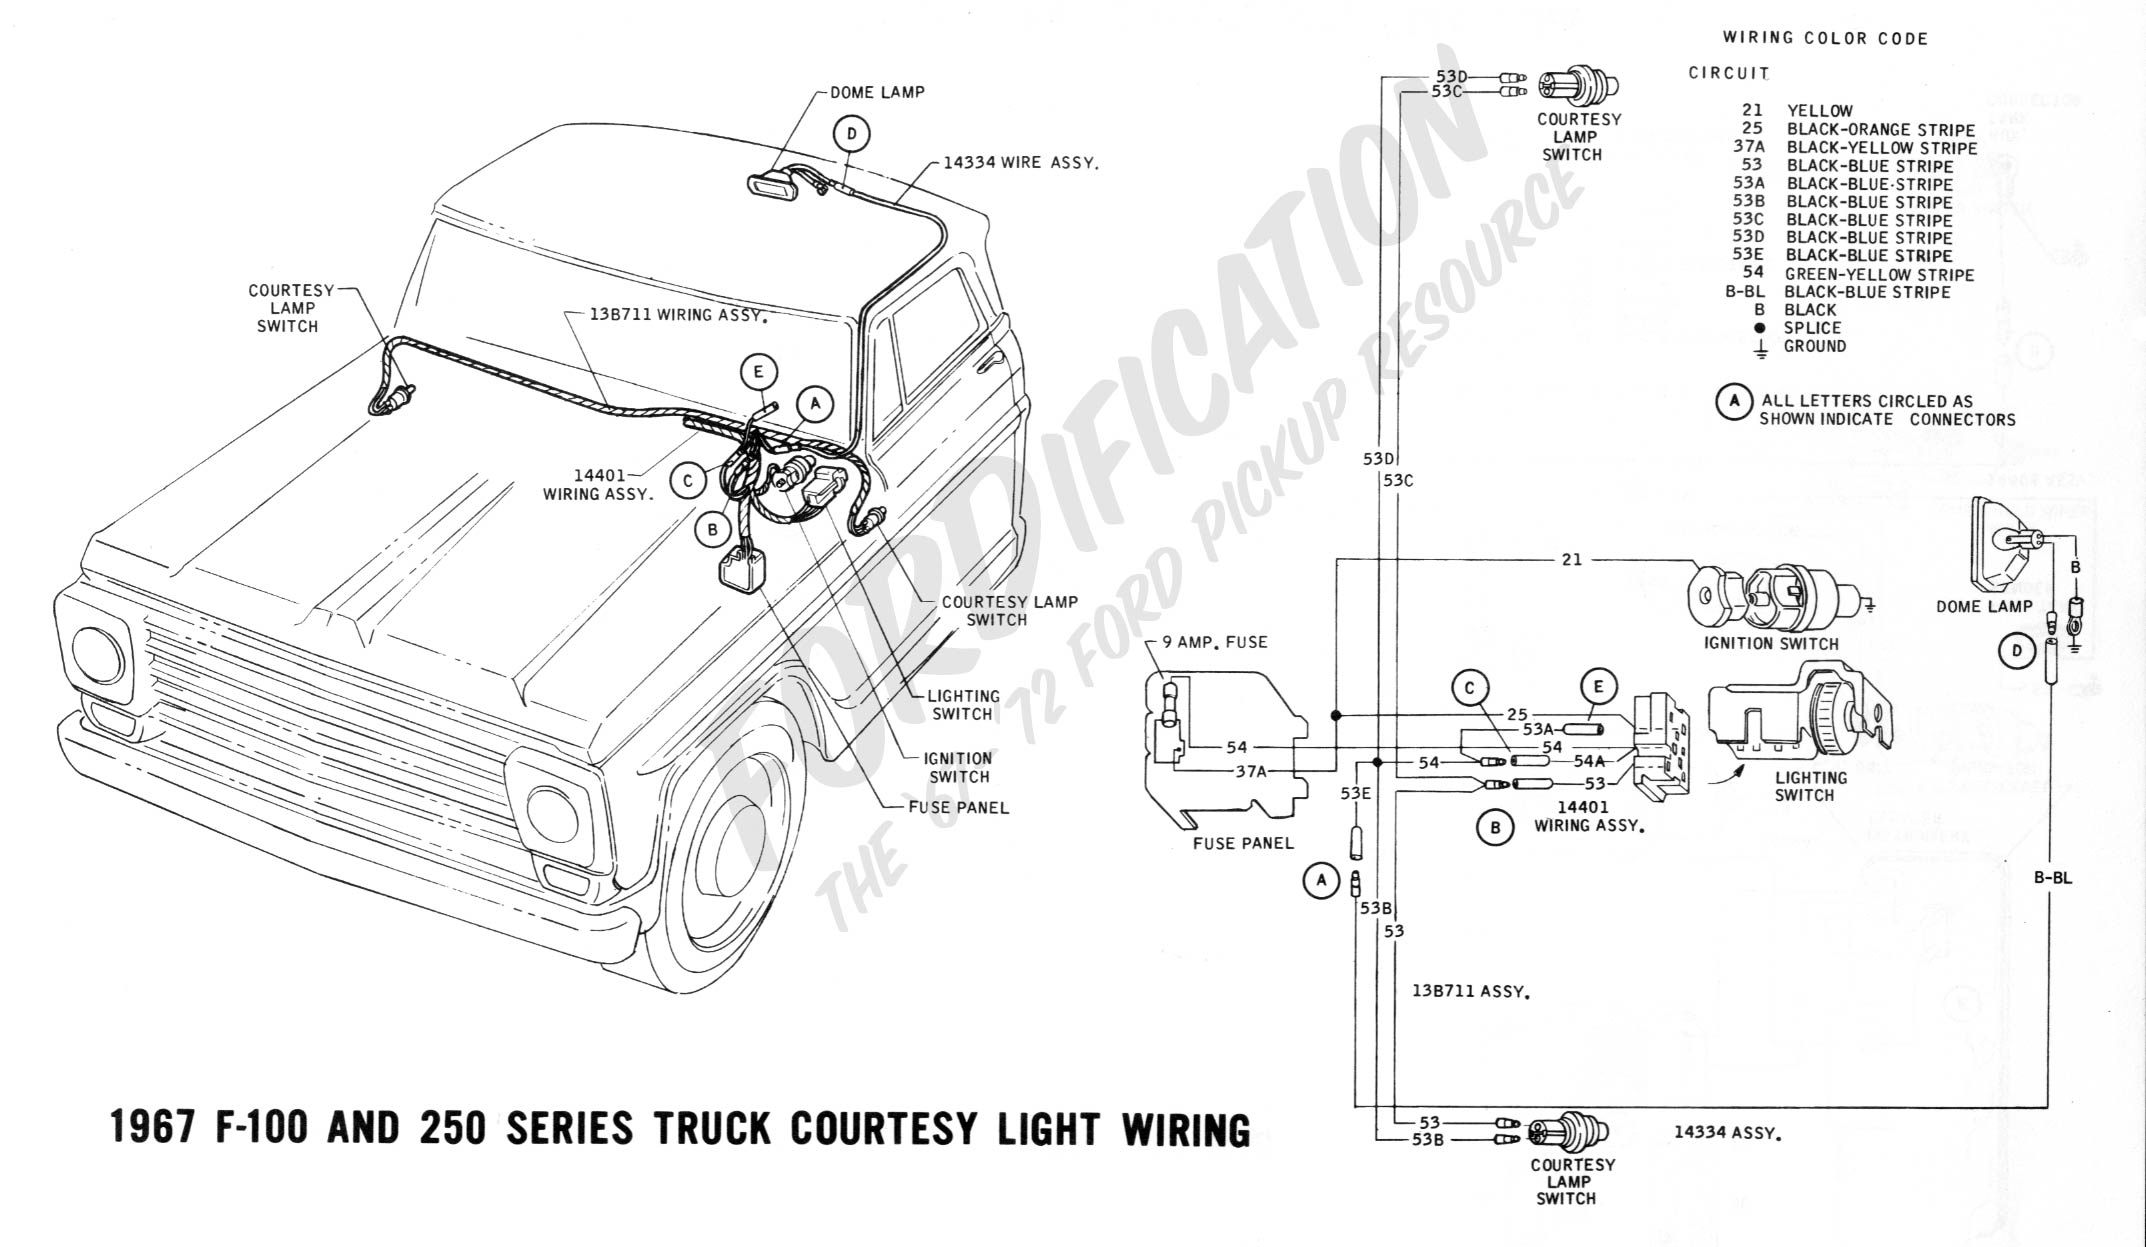 wiring 1967courtesylight ford truck technical drawings and schematics section h wiring 1964 Ford Fairlane at crackthecode.co